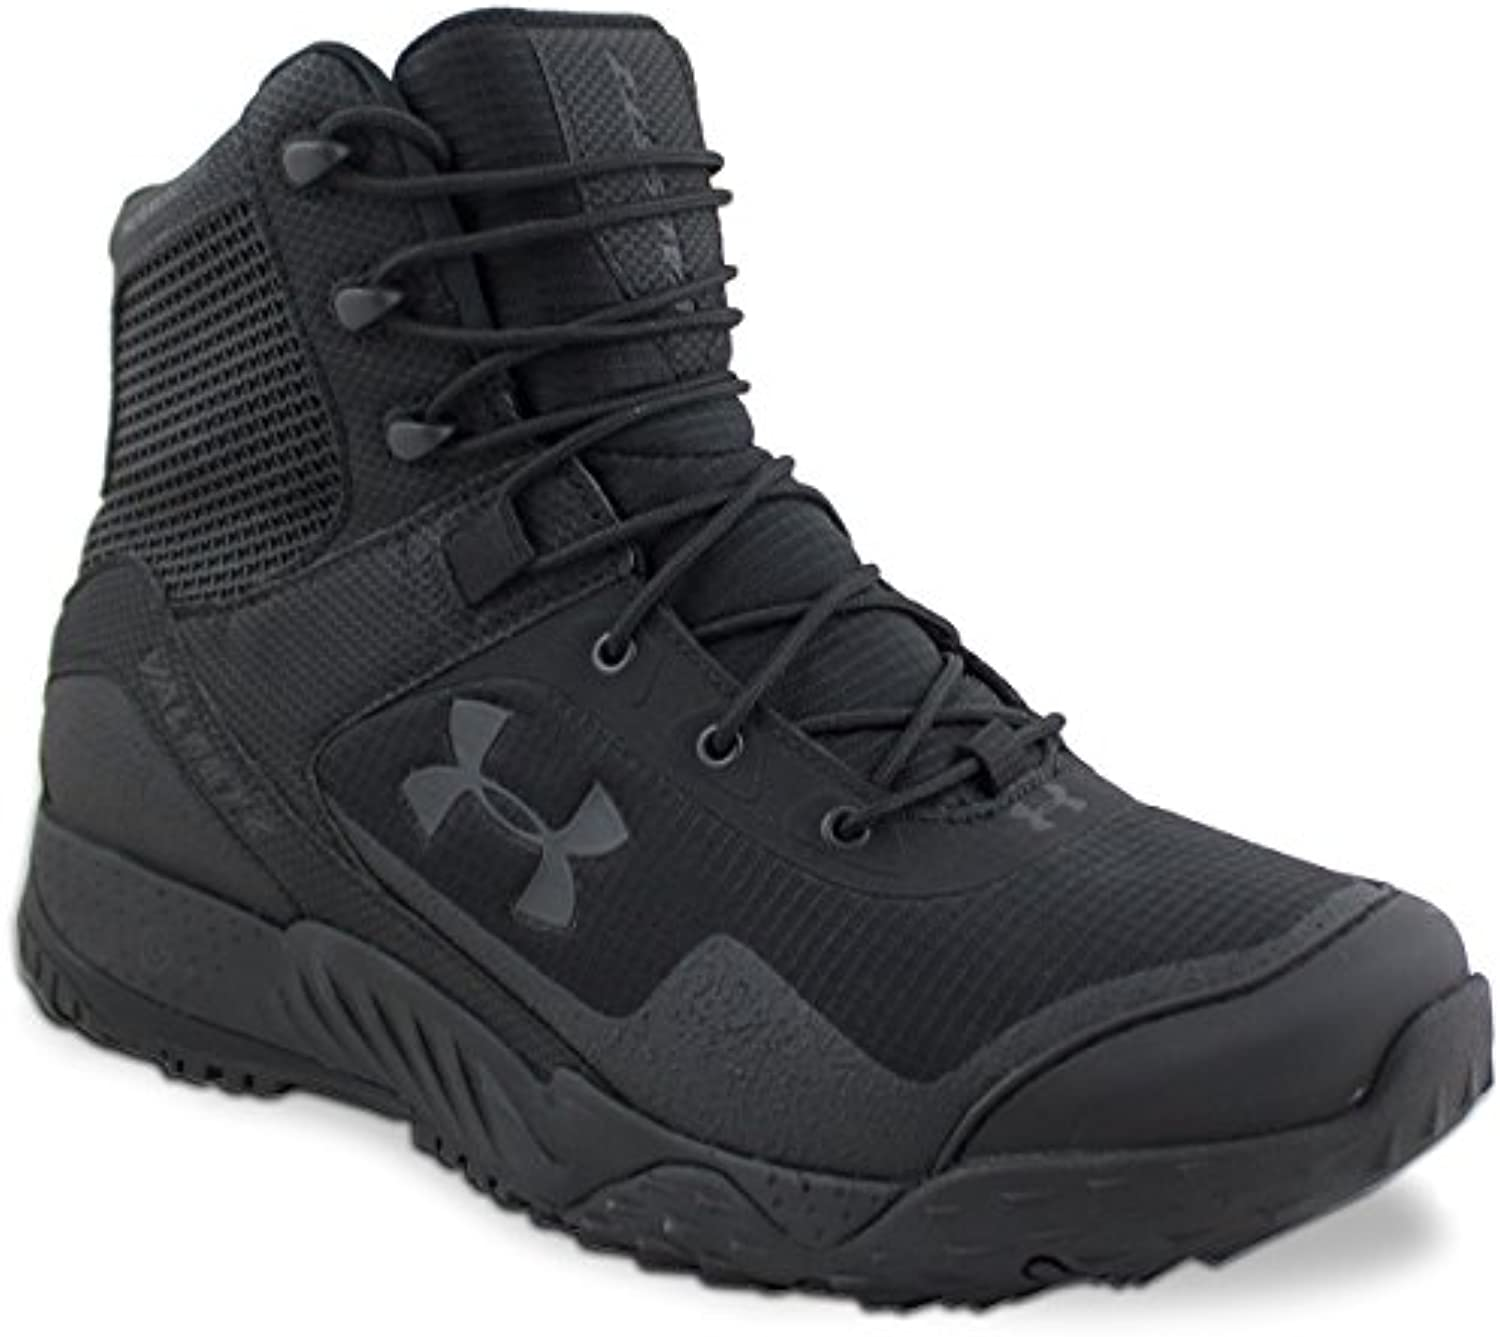 Under Armour - Botas para Hombre, Nergro (Black/Black), 44 EU (9 UK)  -